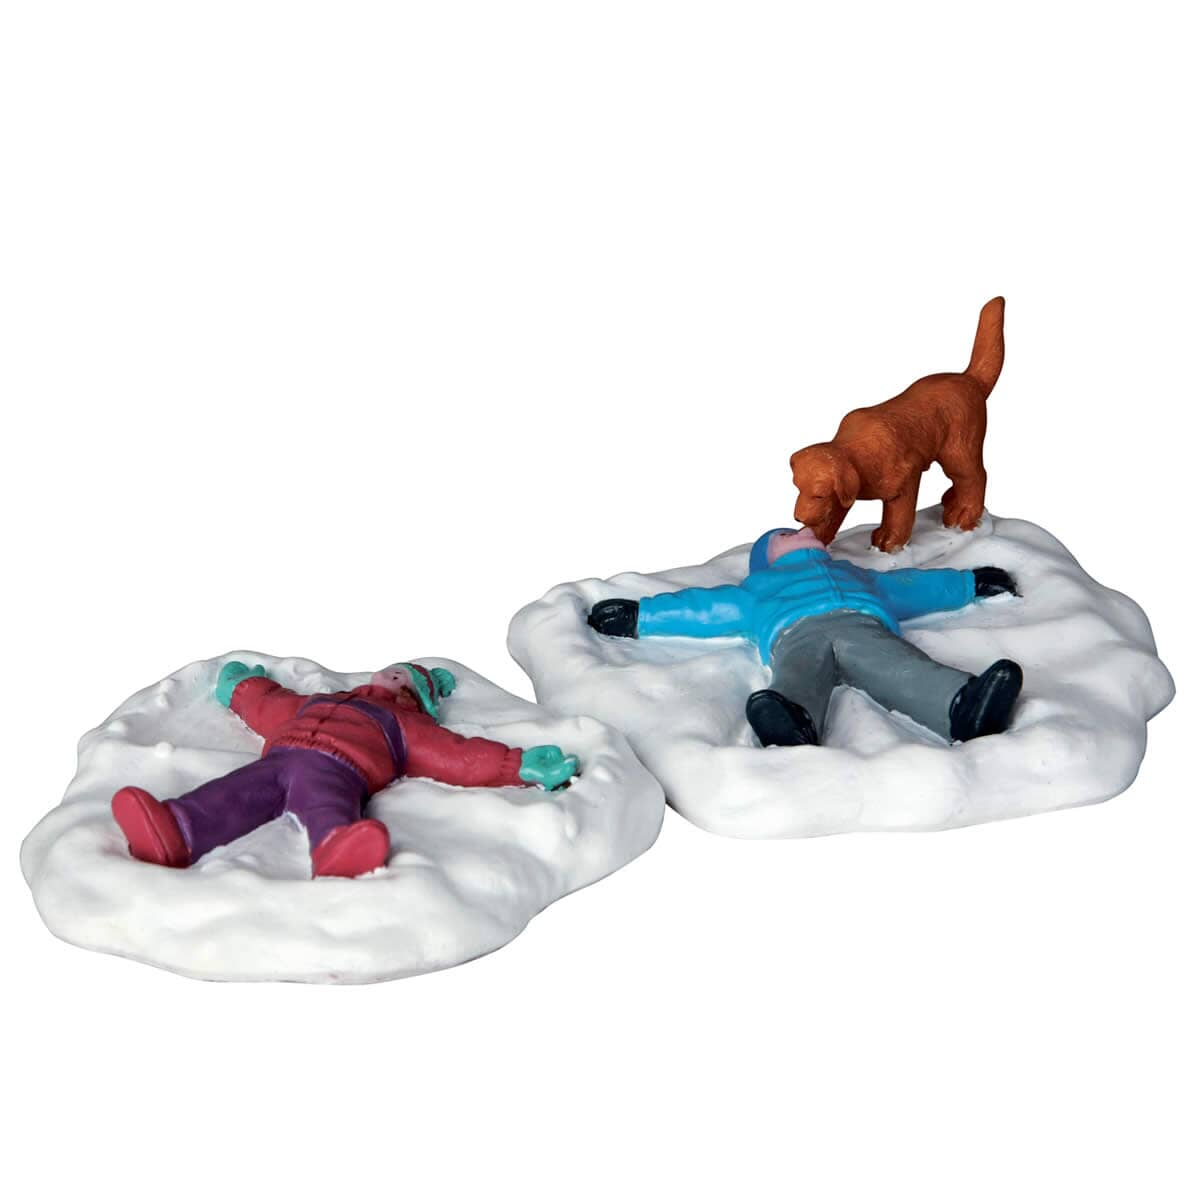 Lemax - Snow Angels Set Of 2